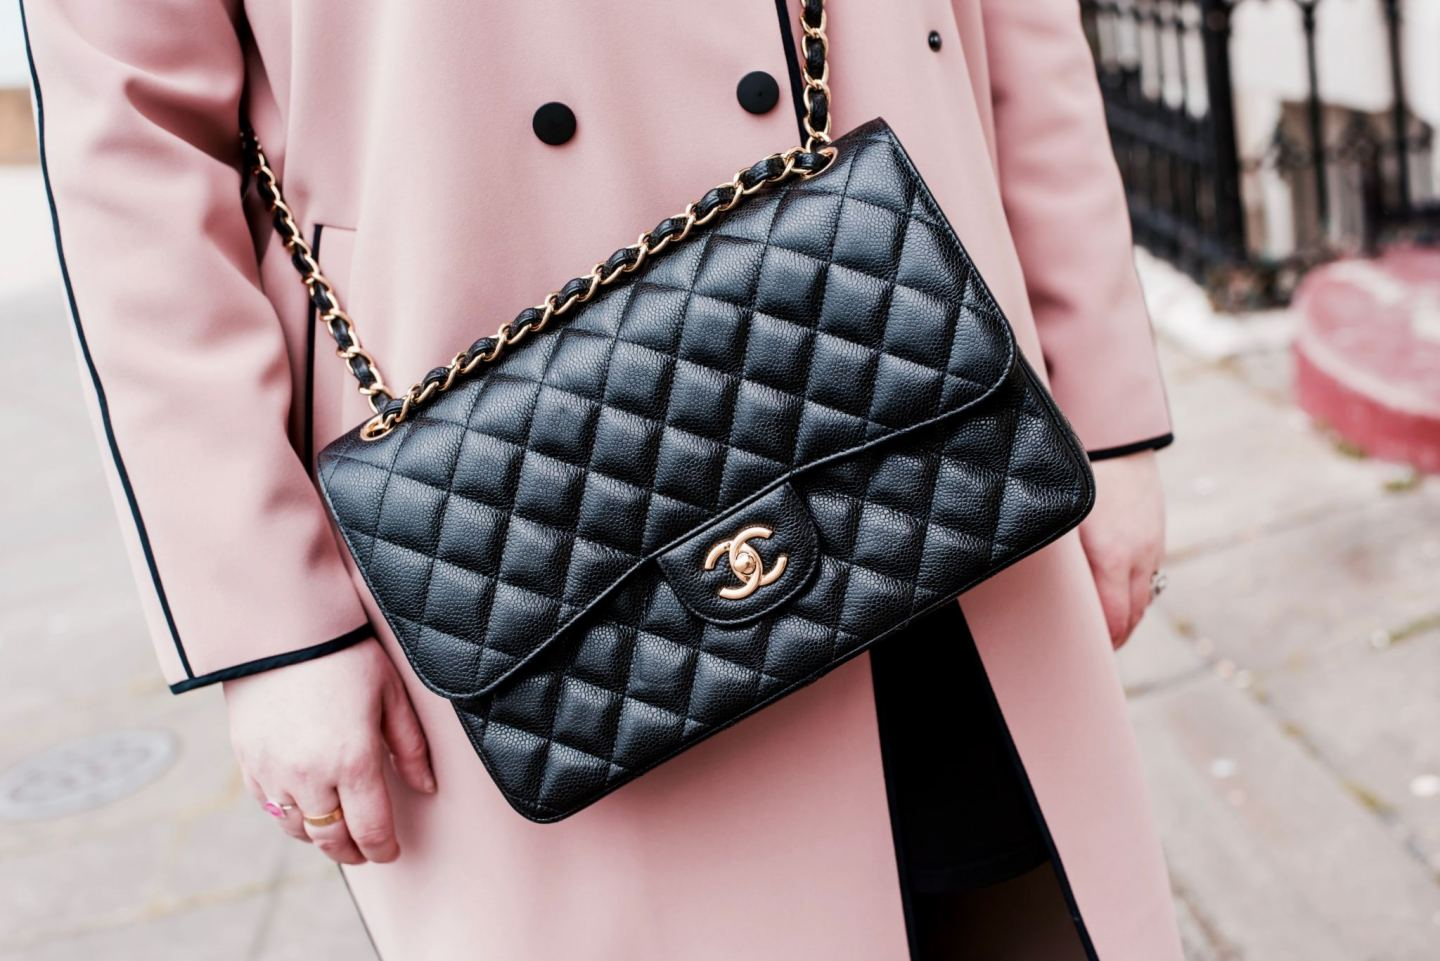 chanel jumbo handbag black leather caviar